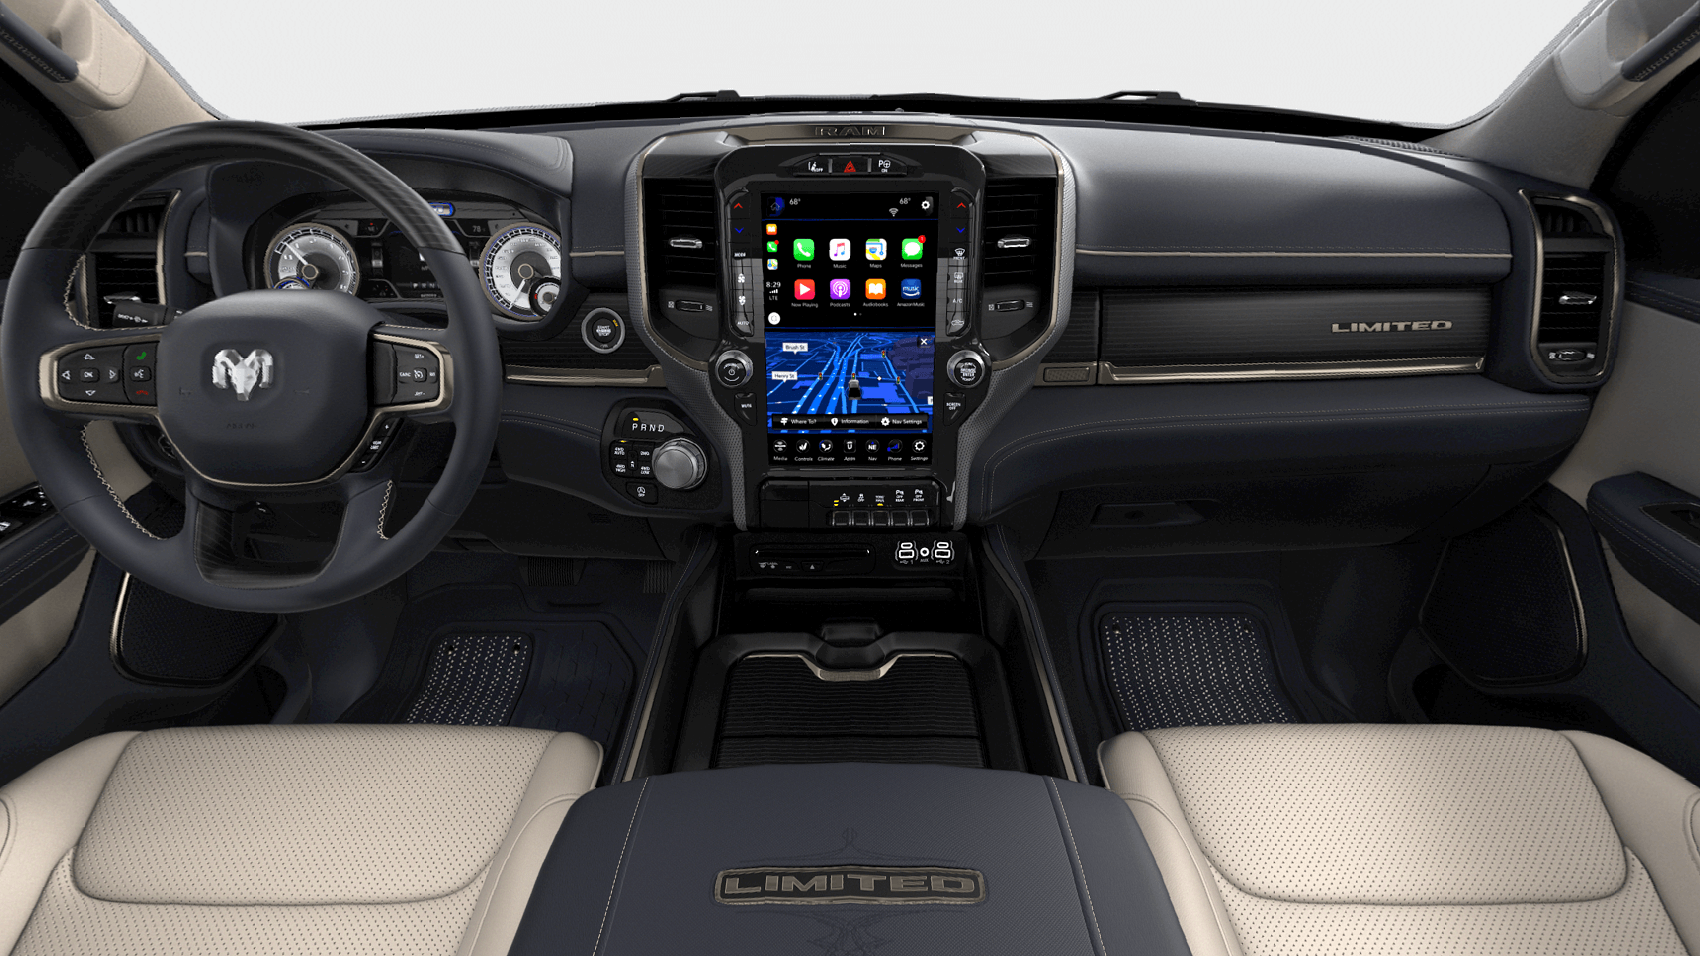 Ram 1500 Interior Wilsonville OR